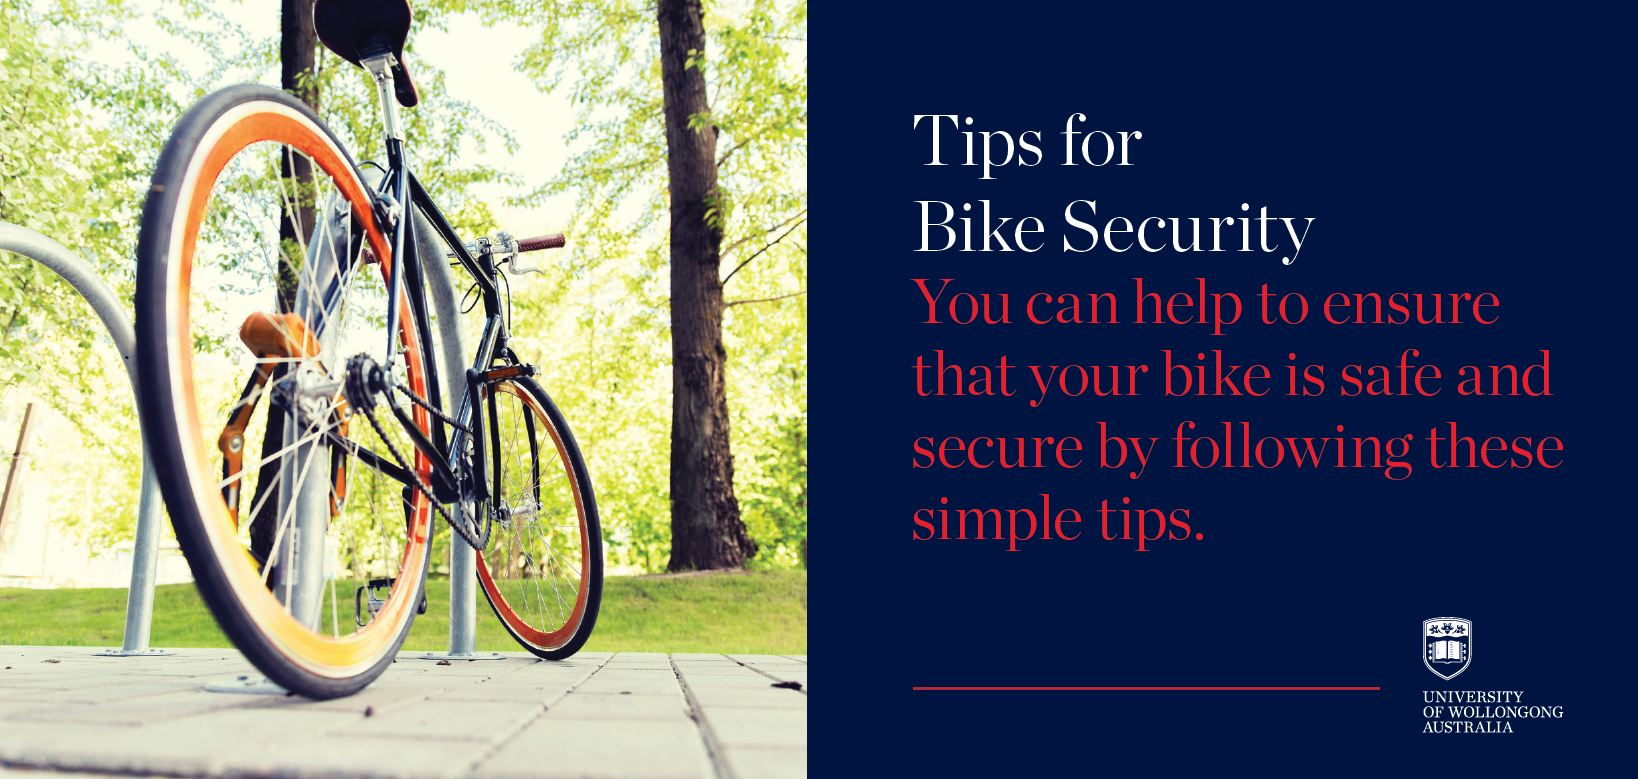 Tips for Bike Security